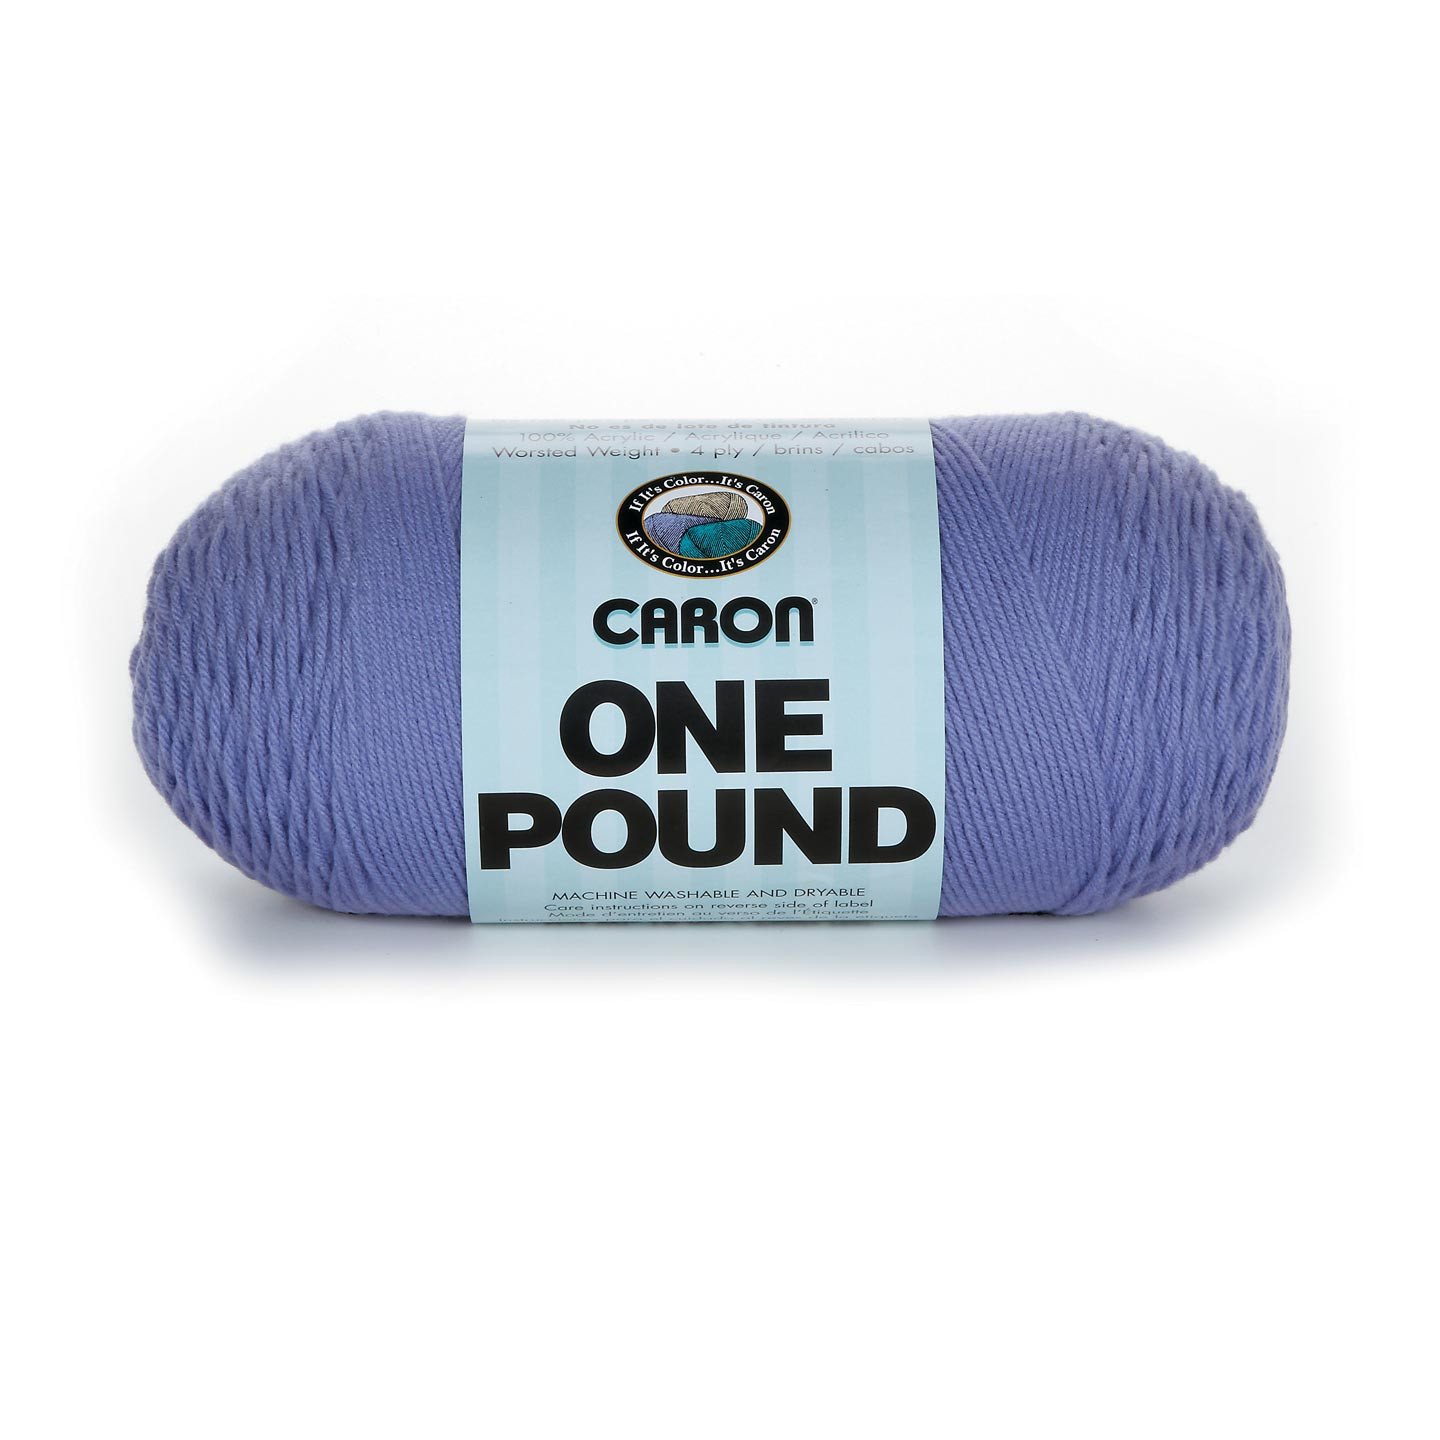 Best Of Caron E Pound Yarn Lavender Blue Caron Pound Yarn Of Gorgeous 48 Pictures Caron Pound Yarn